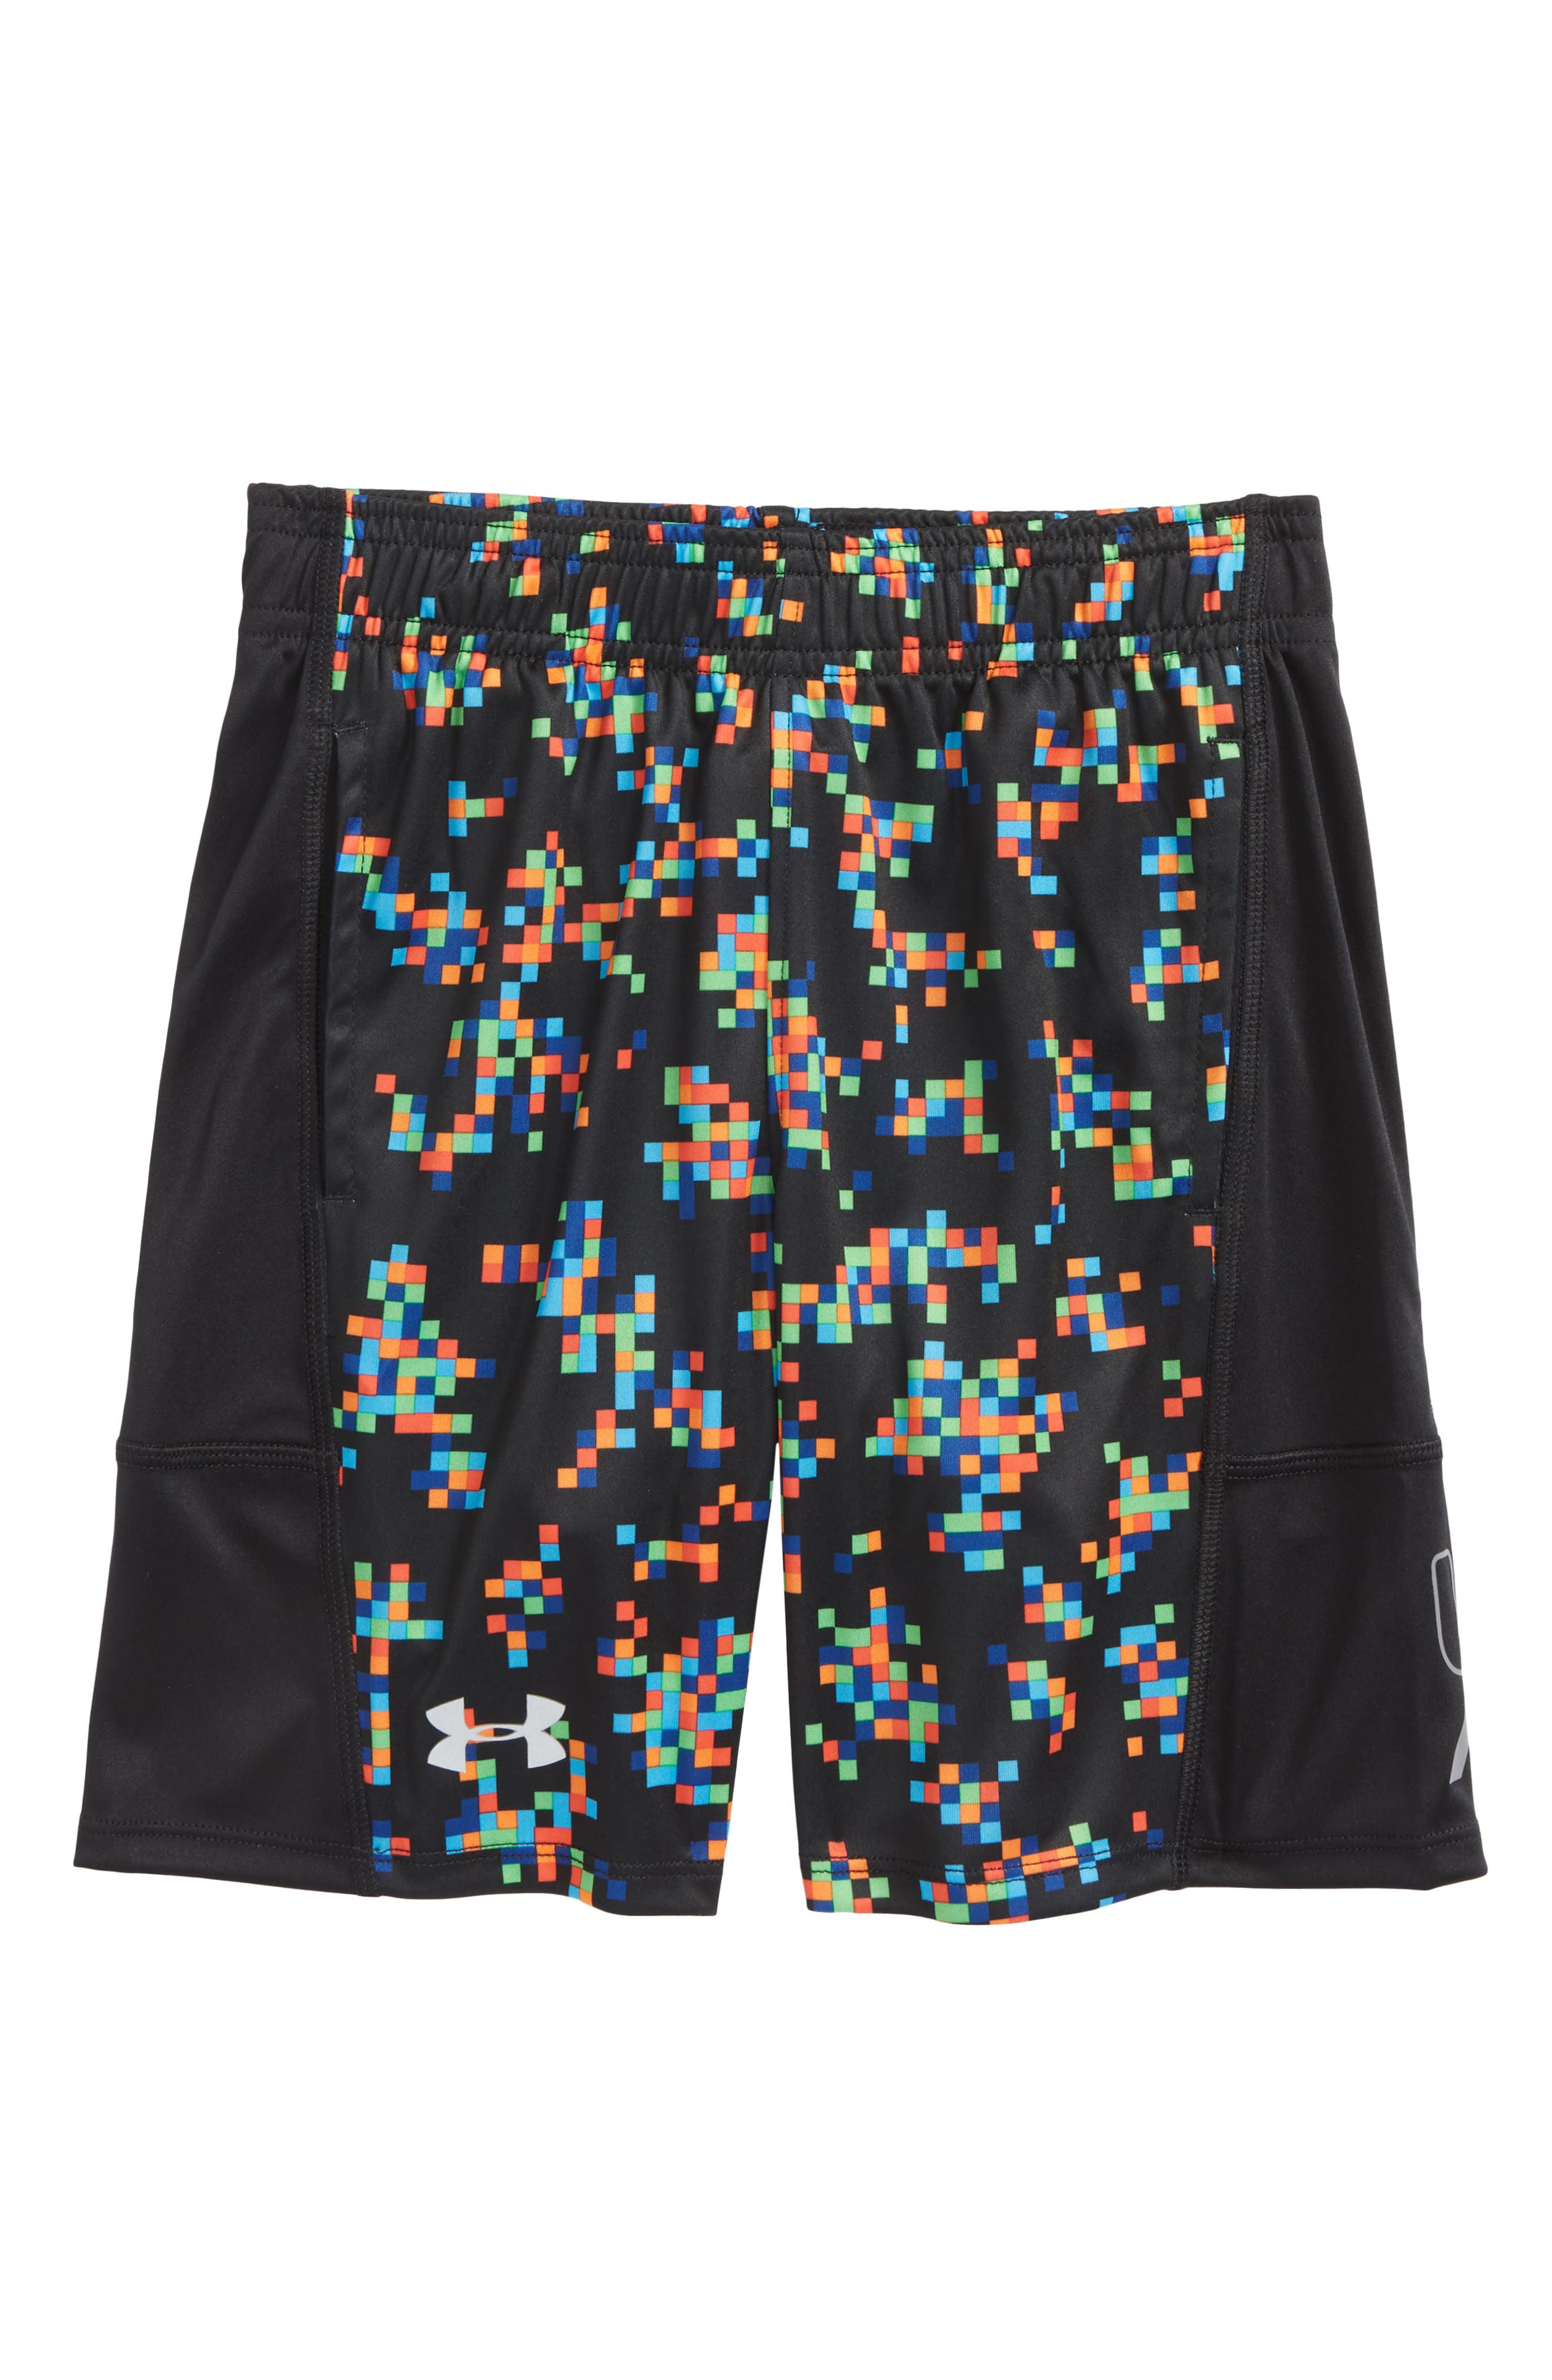 Digi Camo Stunt HeatGear<sup>®</sup> Shorts,                             Main thumbnail 1, color,                             001